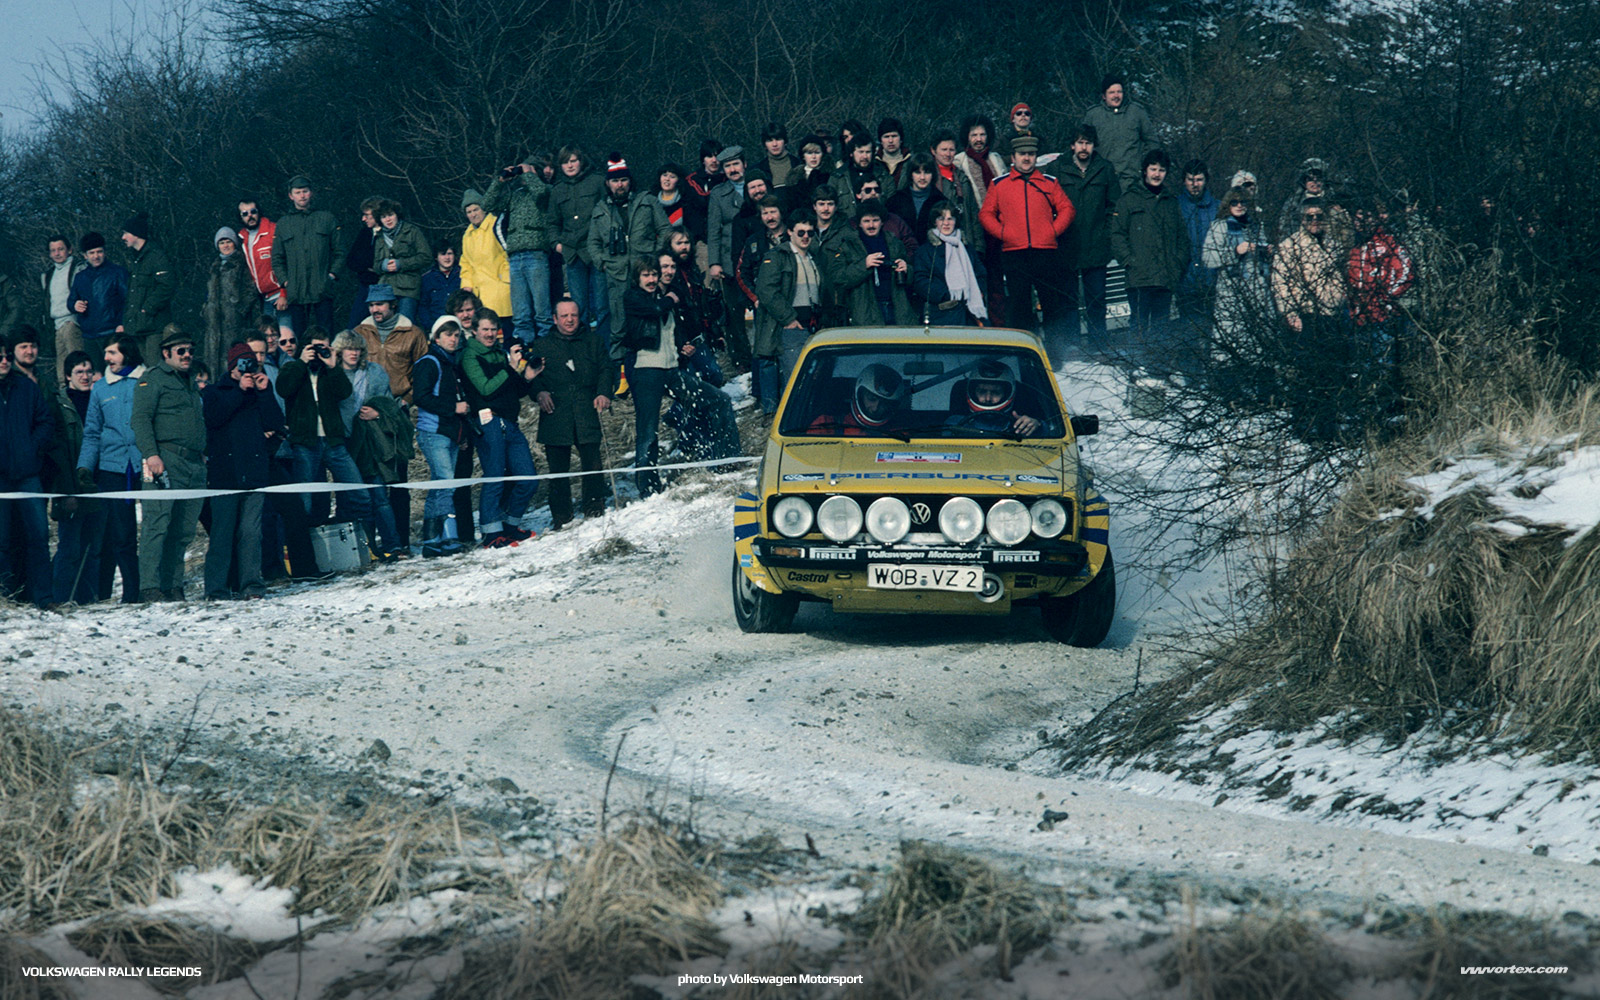 volkswagen-rally-legends-390